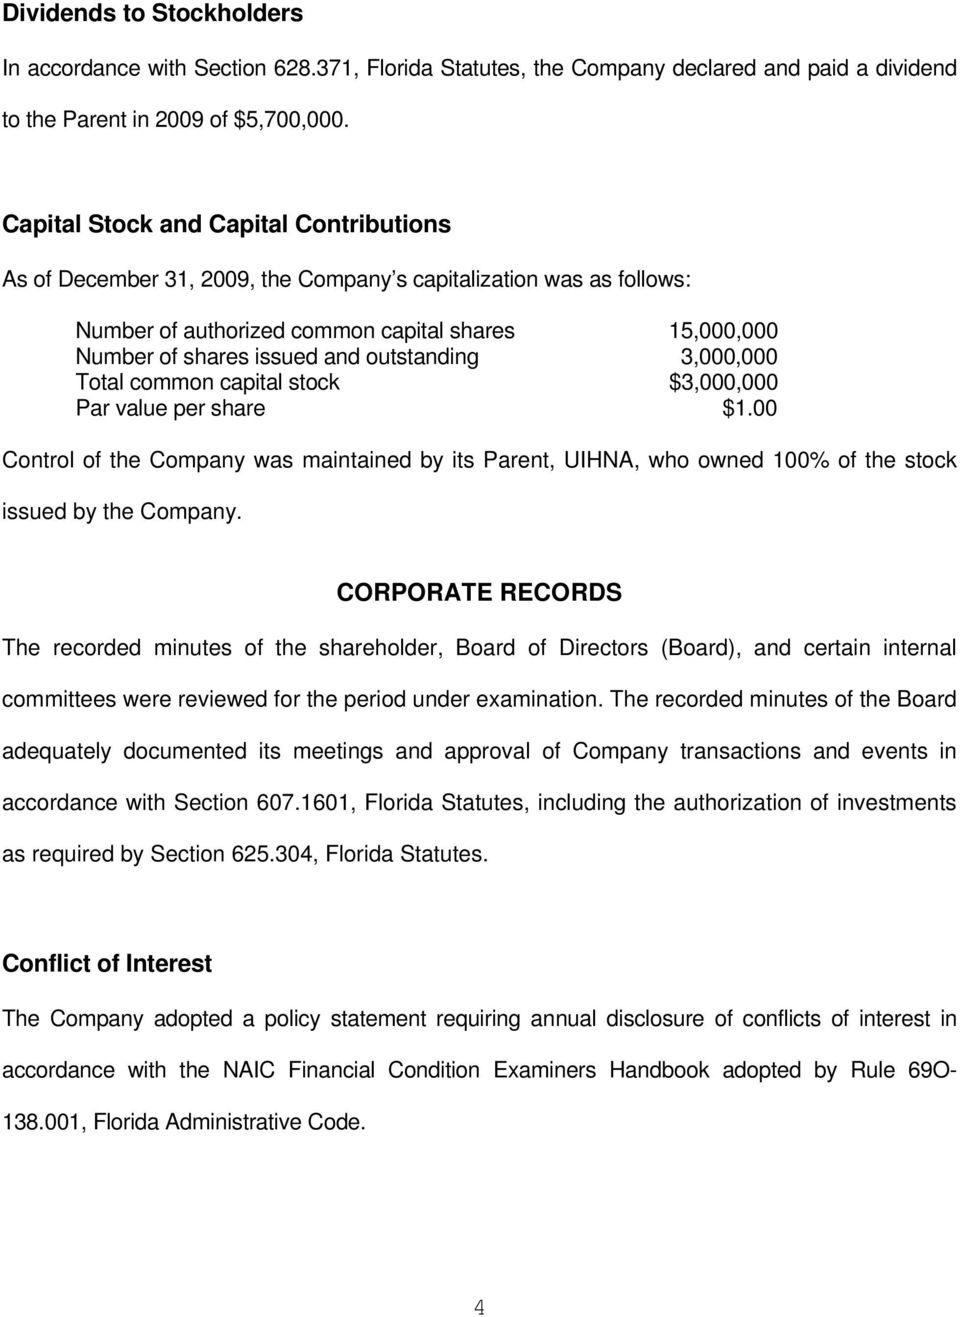 outstanding 3,000,000 Total common capital stock $3,000,000 Par value per share $1.00 Control of the Company was maintained by its Parent, UIHNA, who owned 100% of the stock issued by the Company.